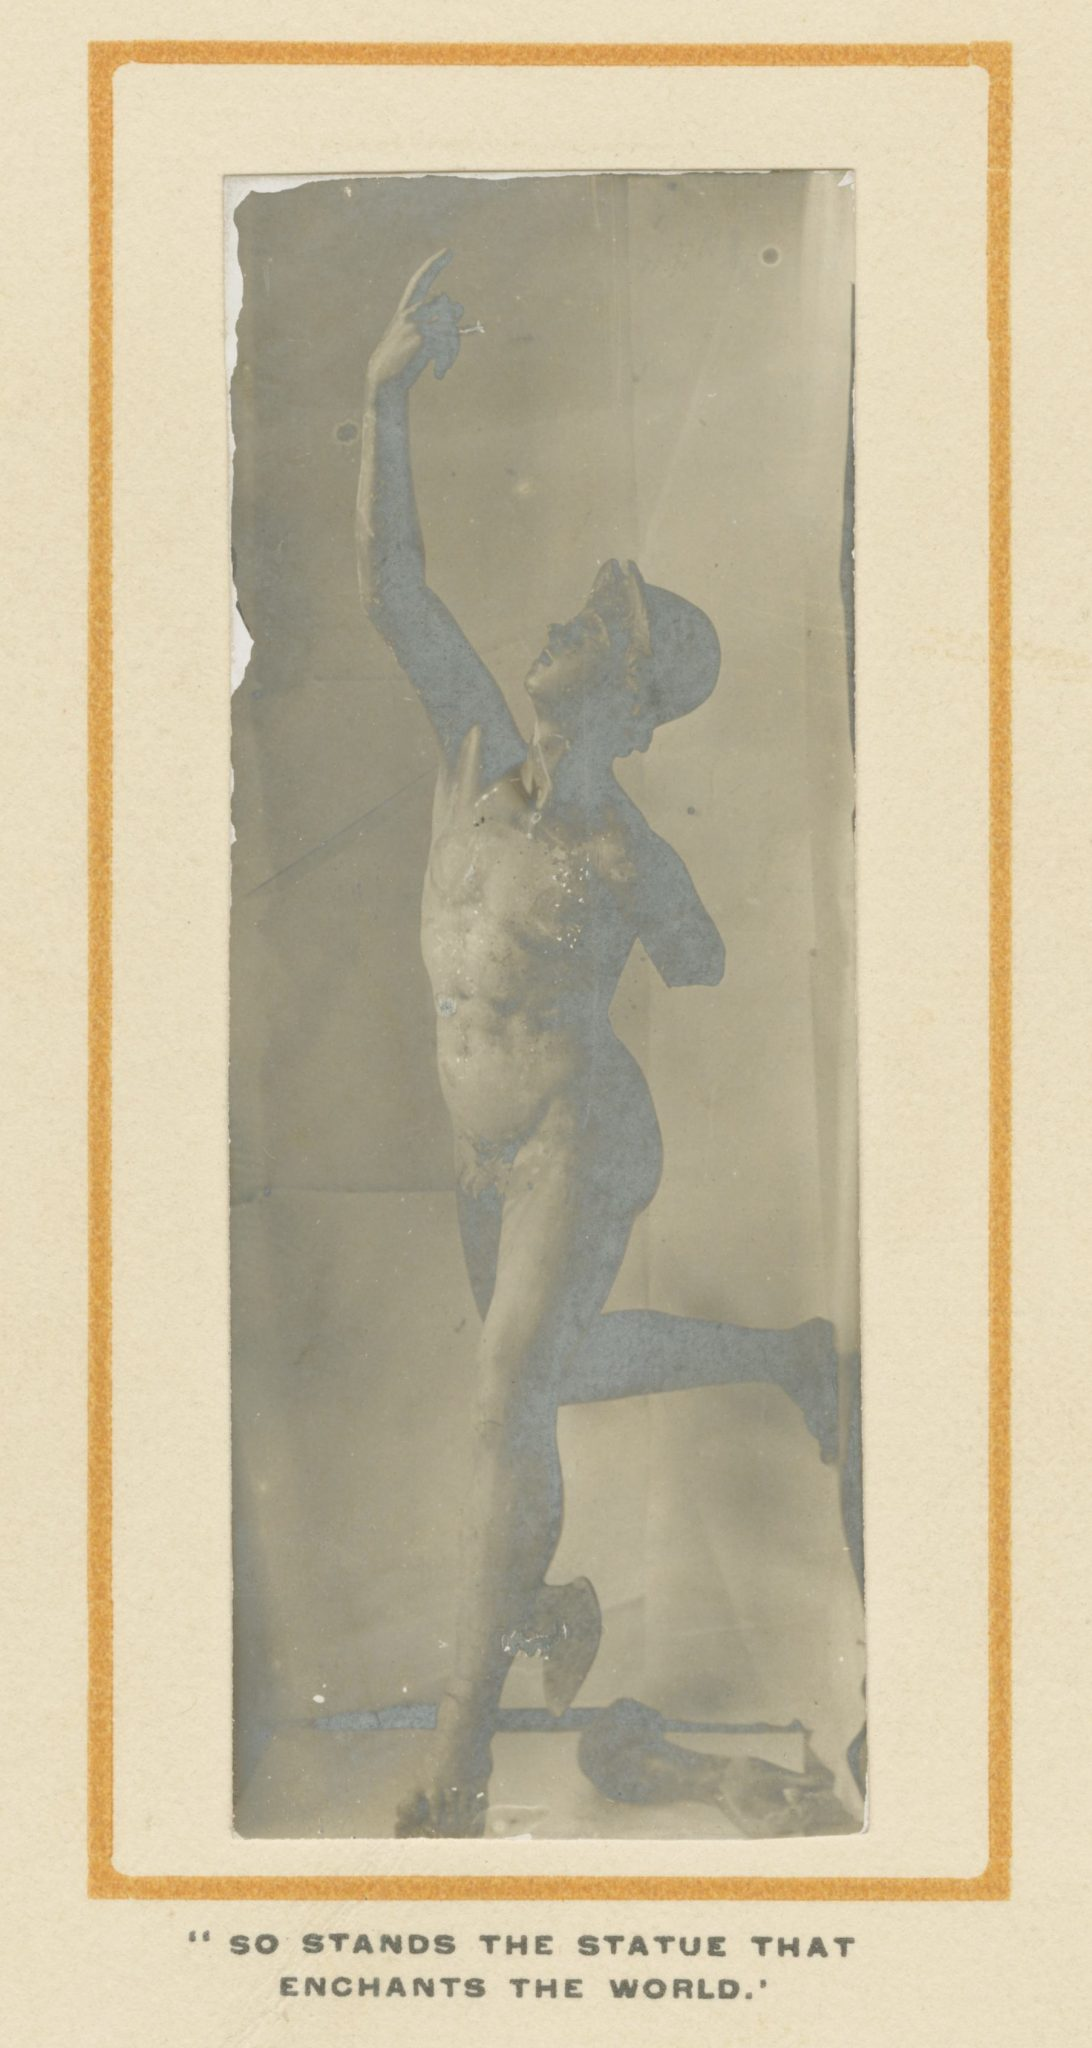 <p>Mercury Picture, from Class of 1905</p><p>First Mercury Banquet Program, 1902.</p><p>Mercury Collection.</p><p>Special Collections and University Archives,</p><p>Colgate University Libraries.</p>